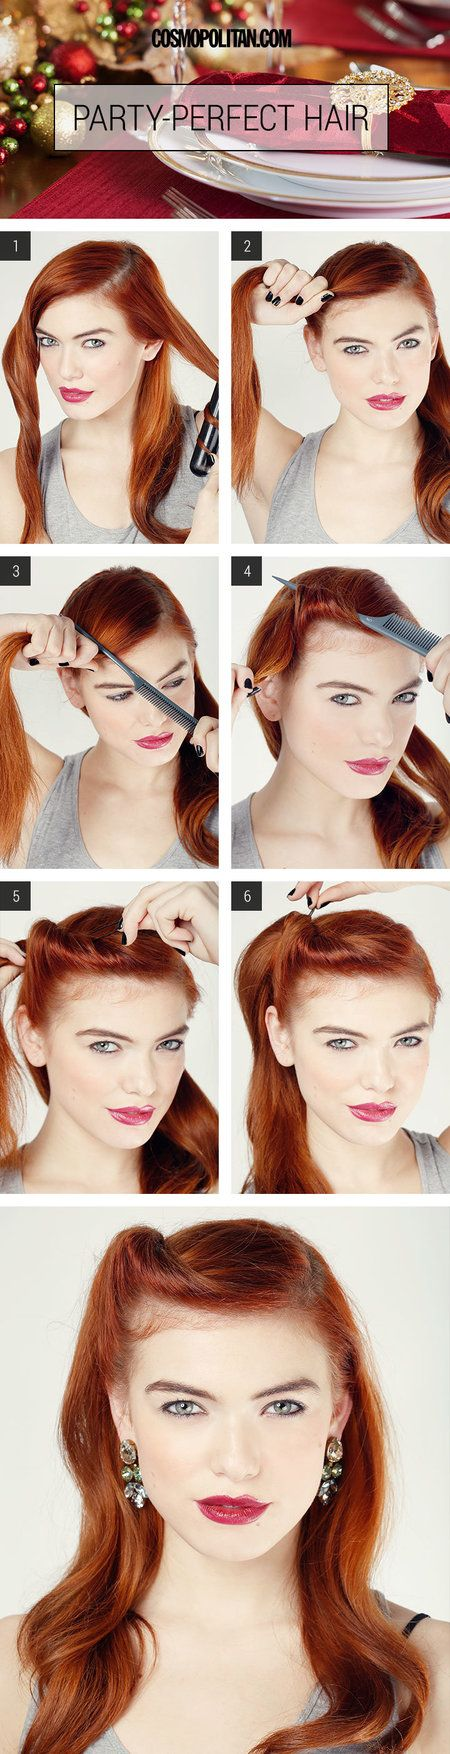 DIY Retro party perfect hair. http://beautifulshoes.org/diy-party-perfect-glam-roll/?fid=3